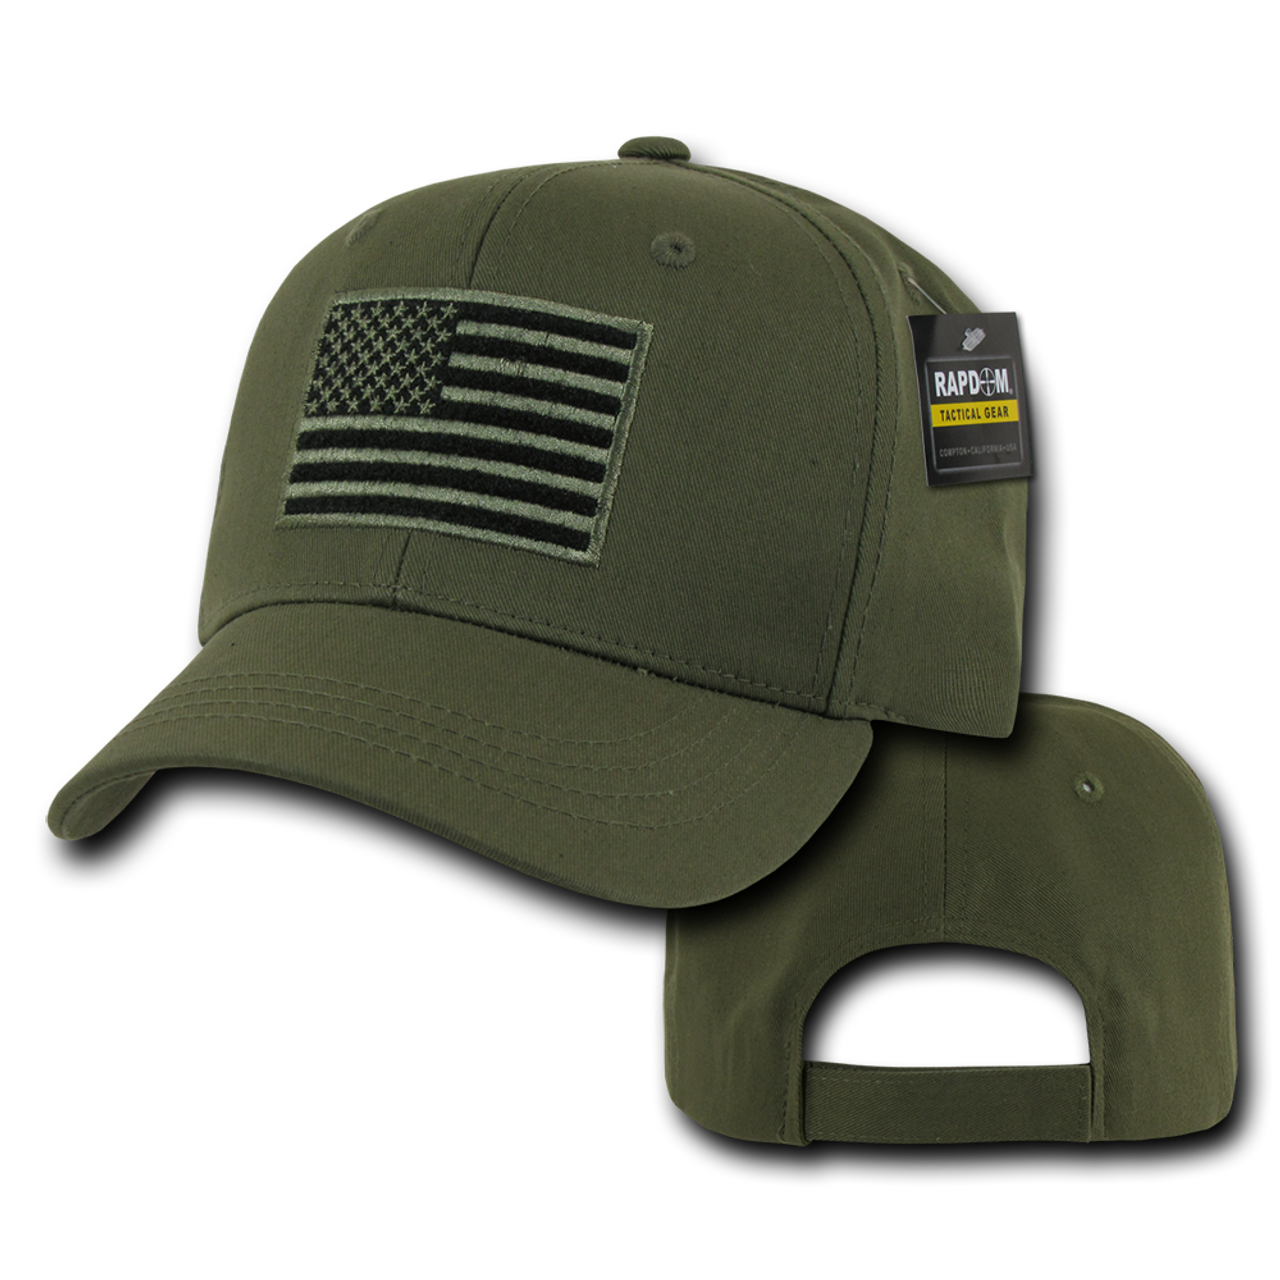 bb4f25e0f85 ... T76 - Tactical Operator Cap - American Flag Subdued - Olive Drab ...